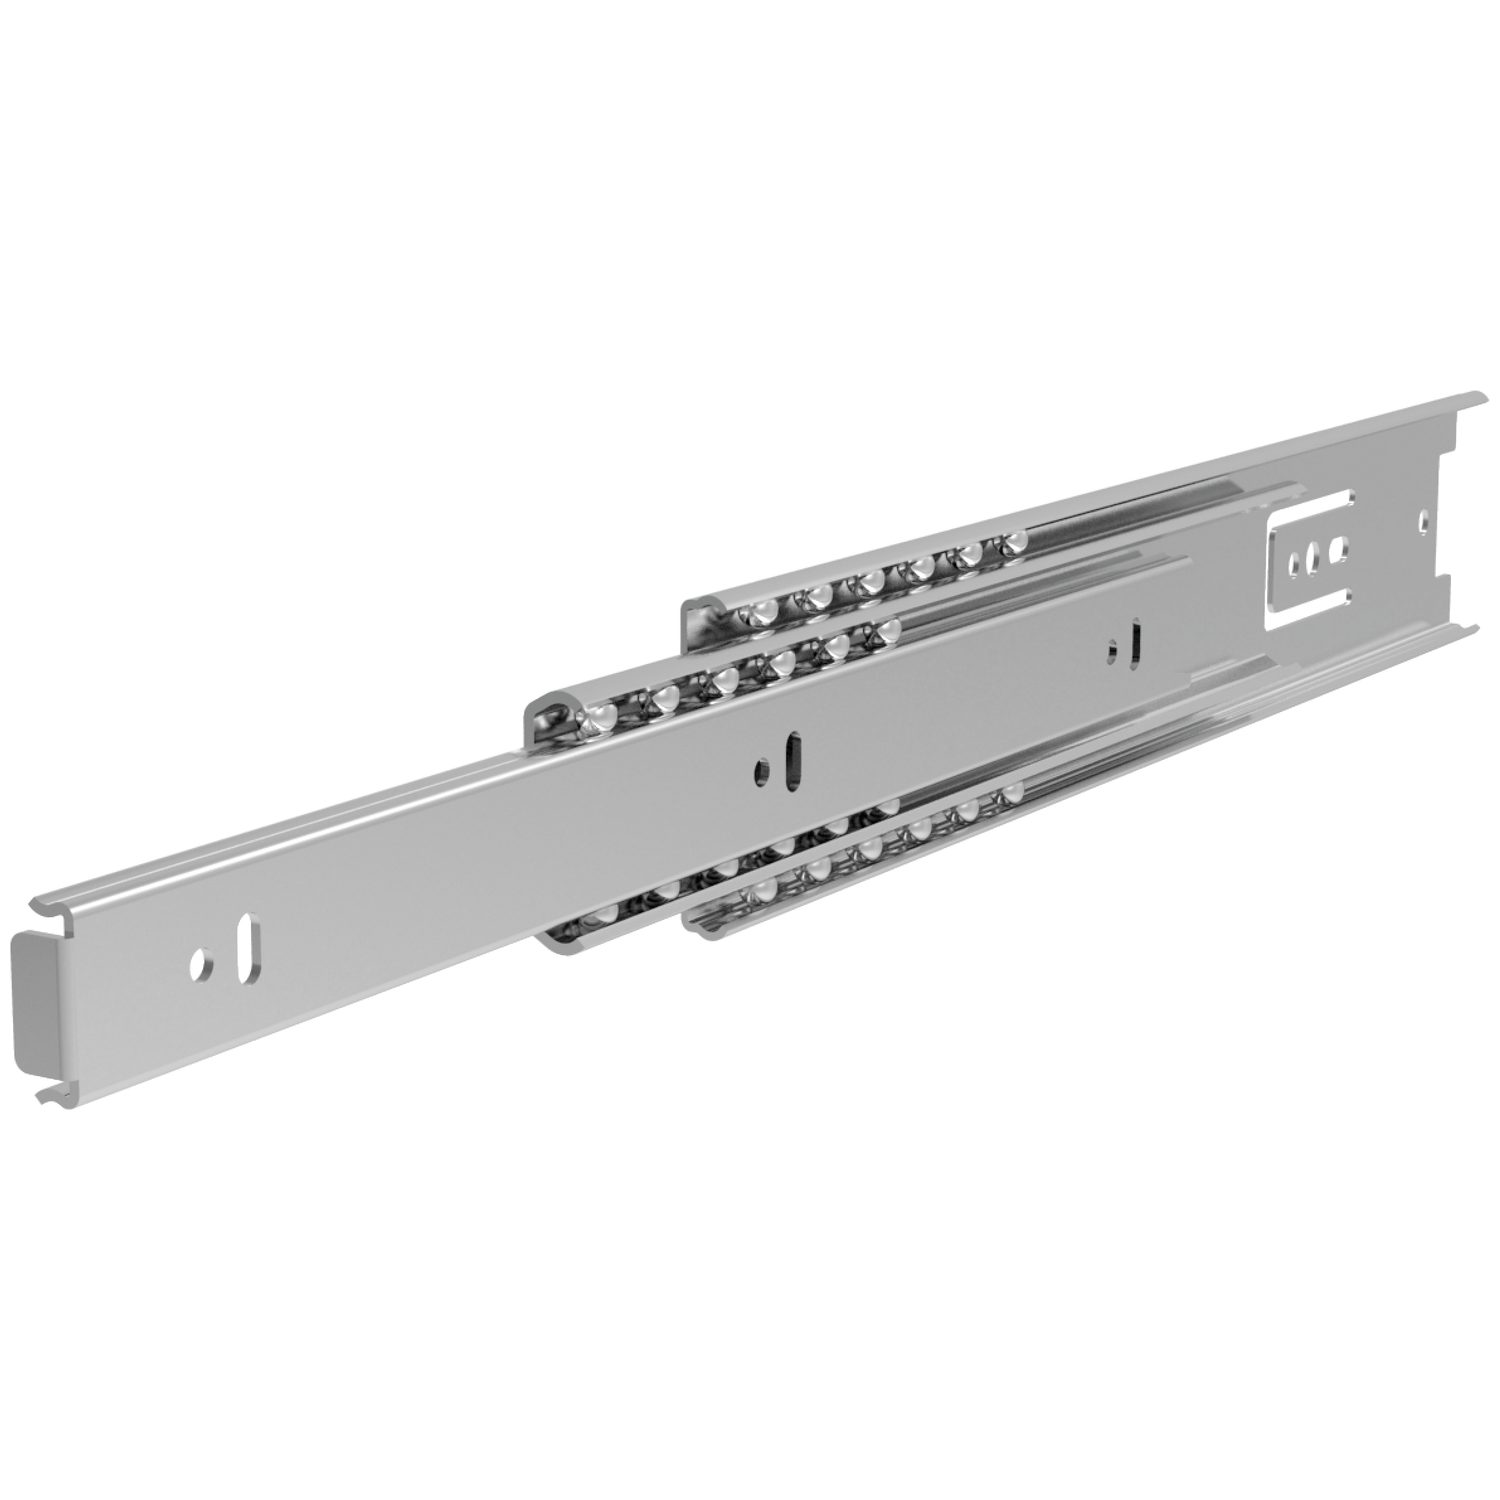 L2010 - Fully Telescopic Drawer Slides